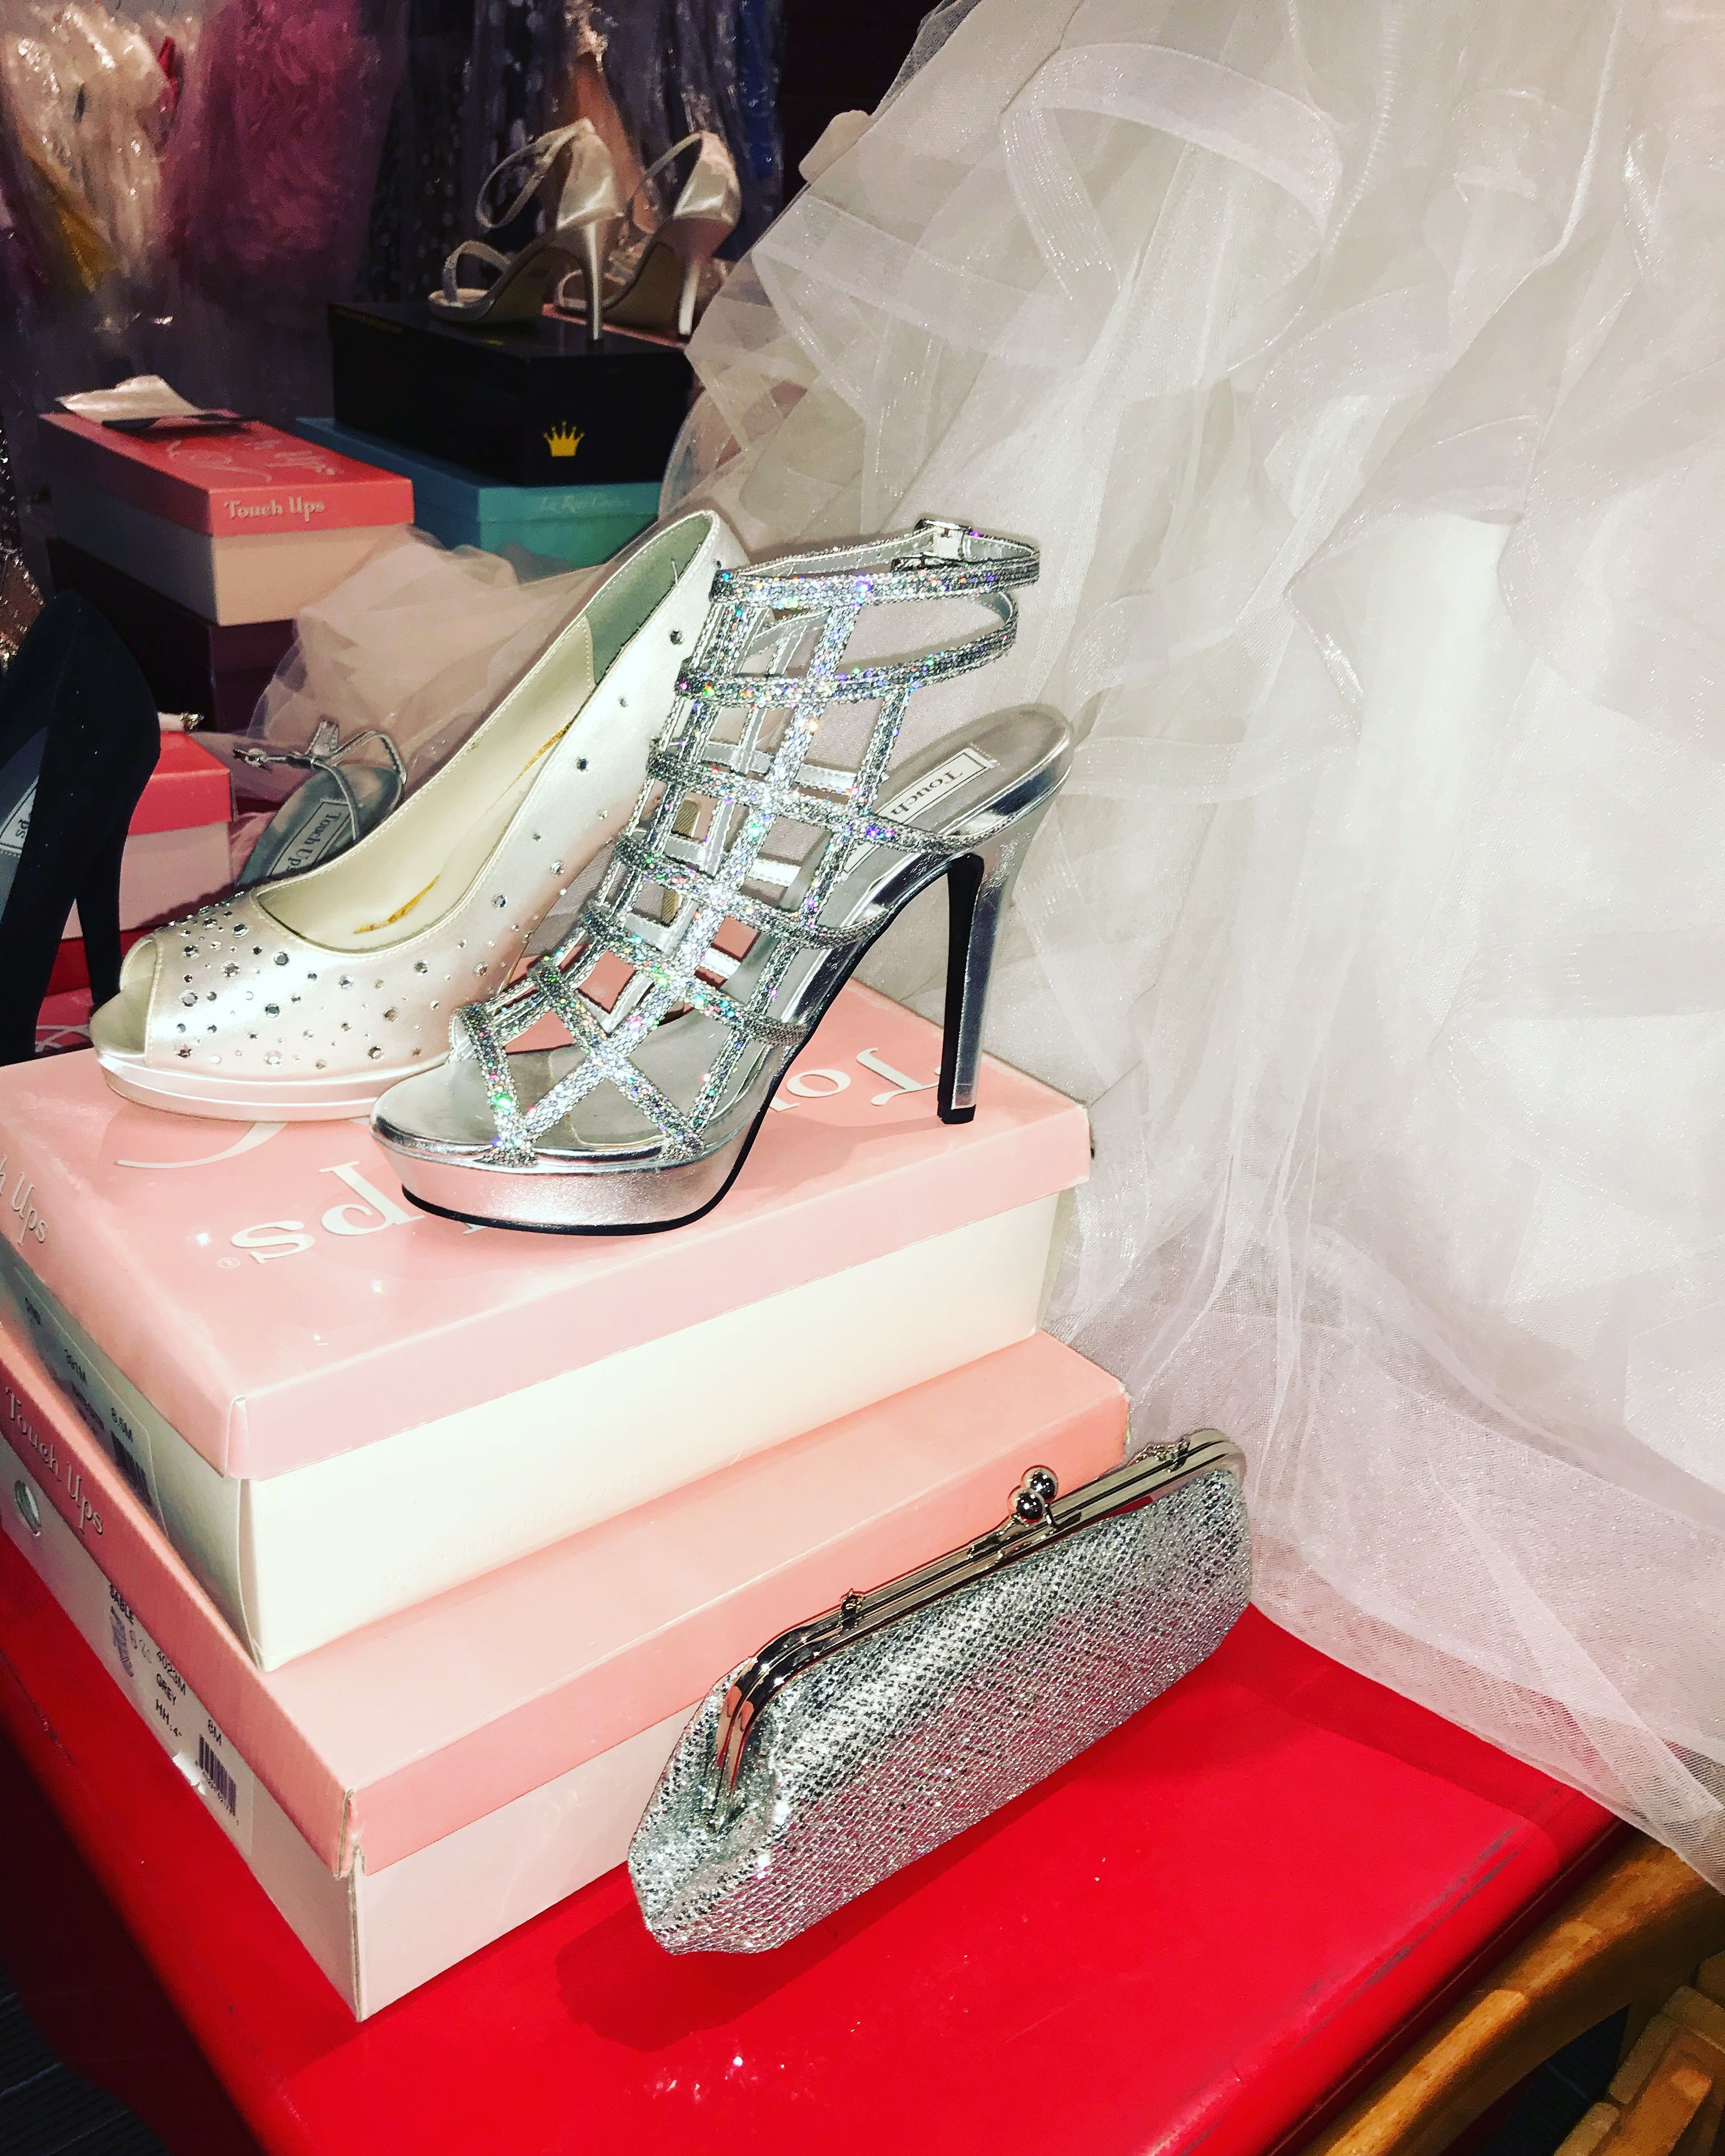 Shoes Cupid Couture  Weddings, Prom & Portraits 64 W. Lincolnway  Valparaiso, IN 46383 219-242-8367 www.cupidcouture.com YourOneStopShop👗💃🏼👰🏻💍👠📷